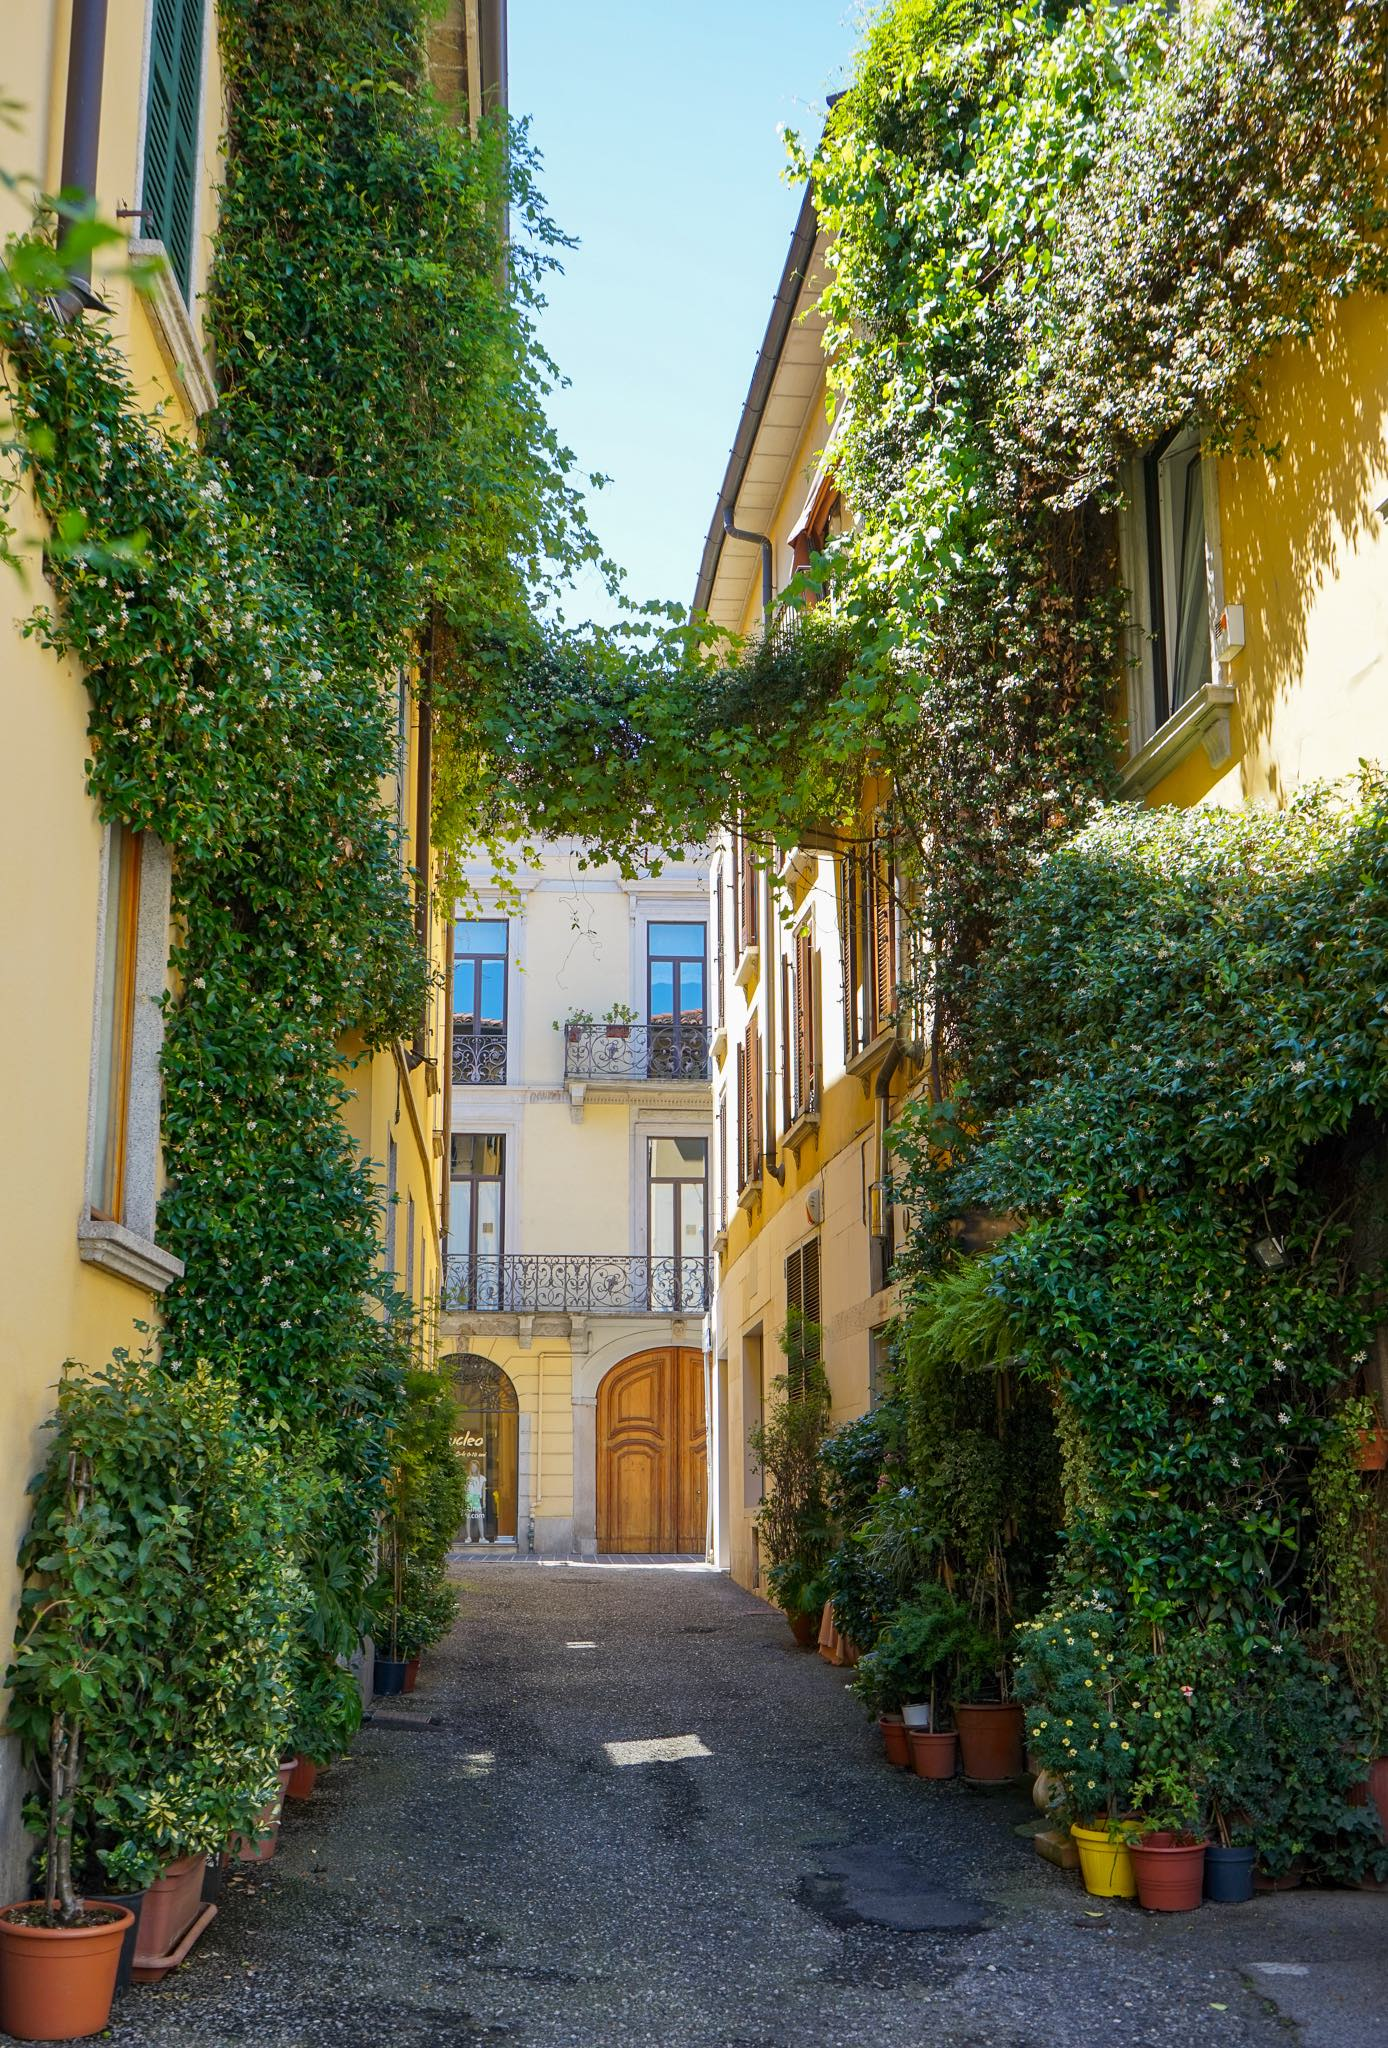 The beautiful via Bellani in Monza historic centre, covered in greenery